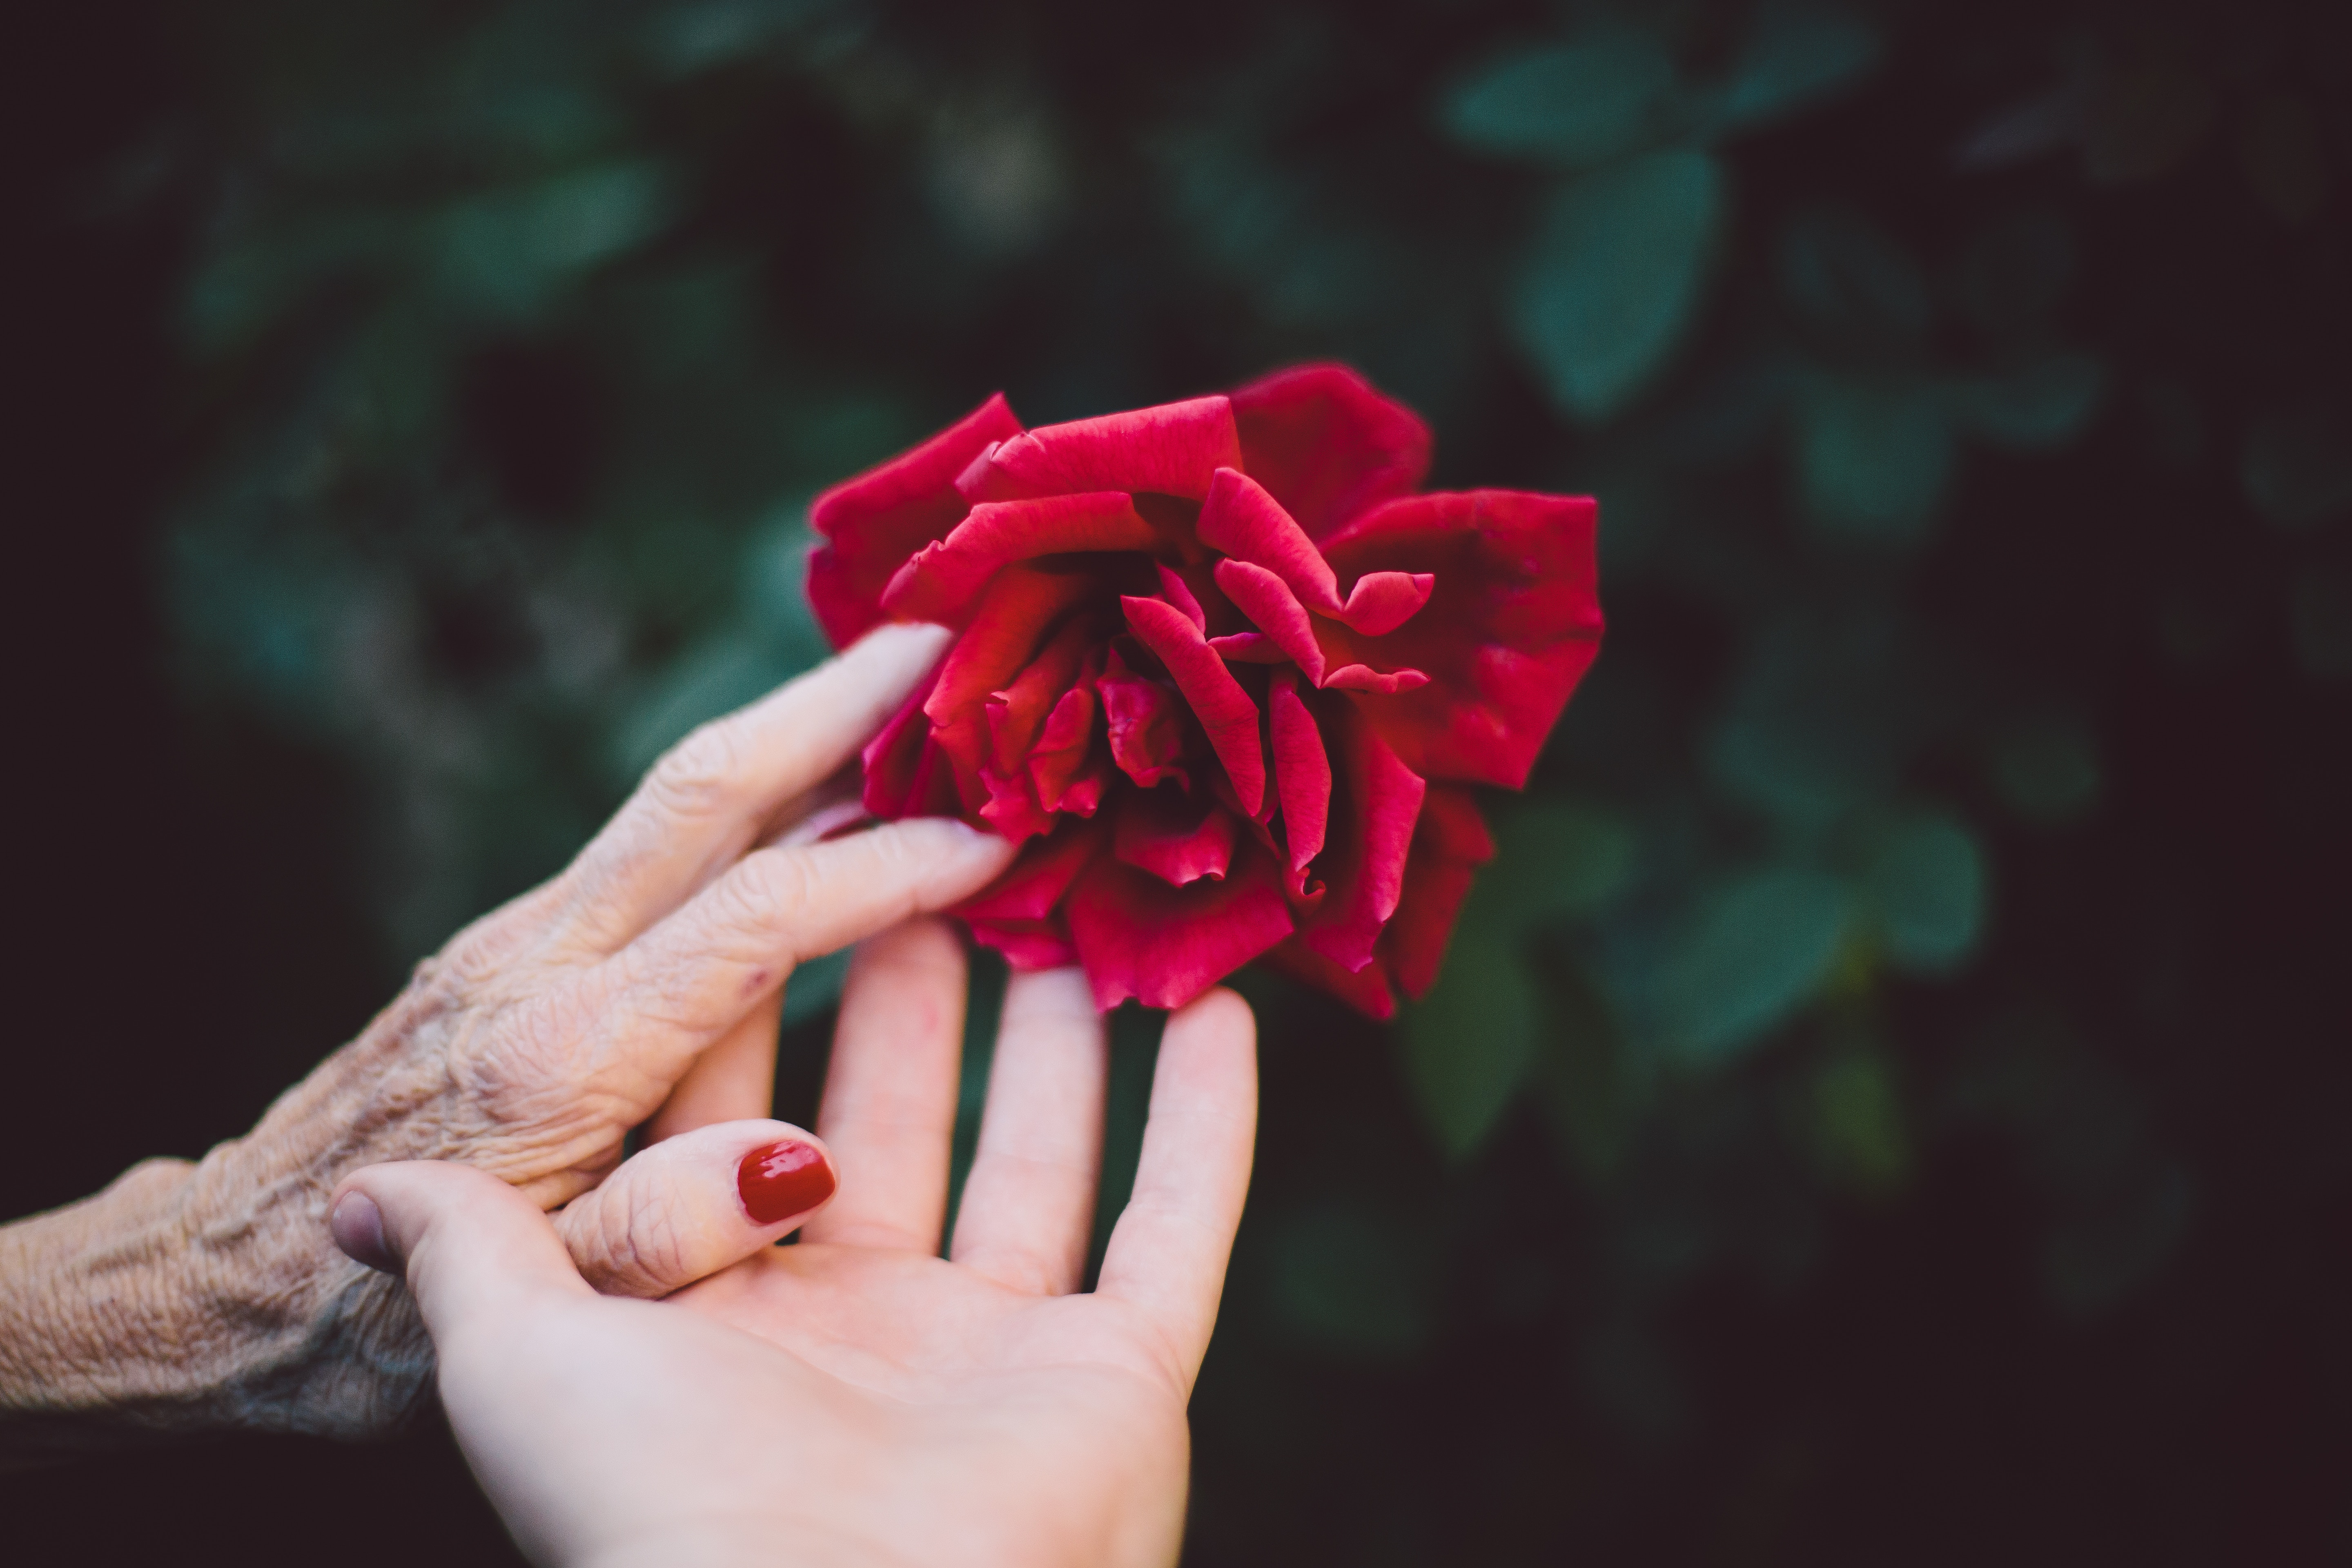 Young woman and elderly woman's hands touching each other and a red rose